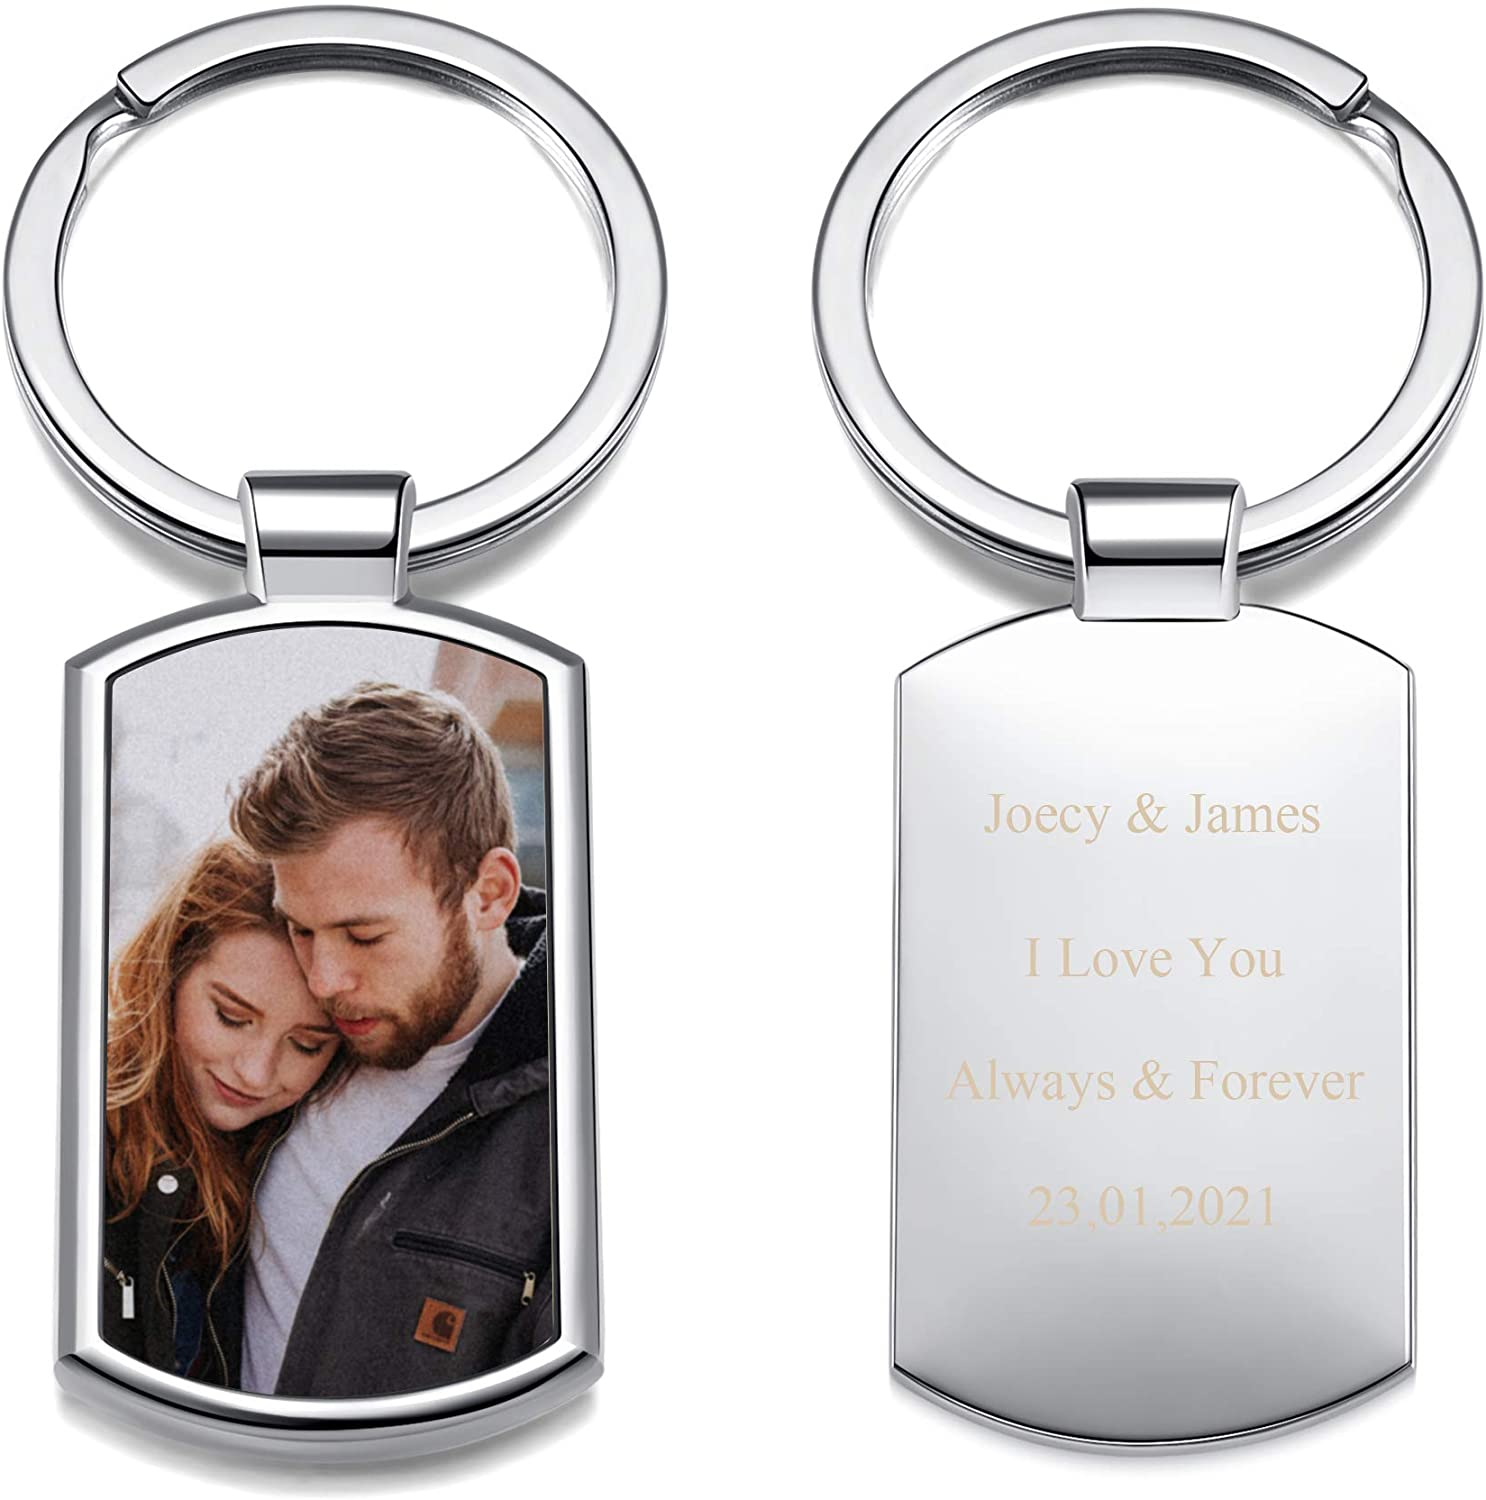 Personalized Master Custom Picture Keychain New Orleans Mall P Color Tampa Mall